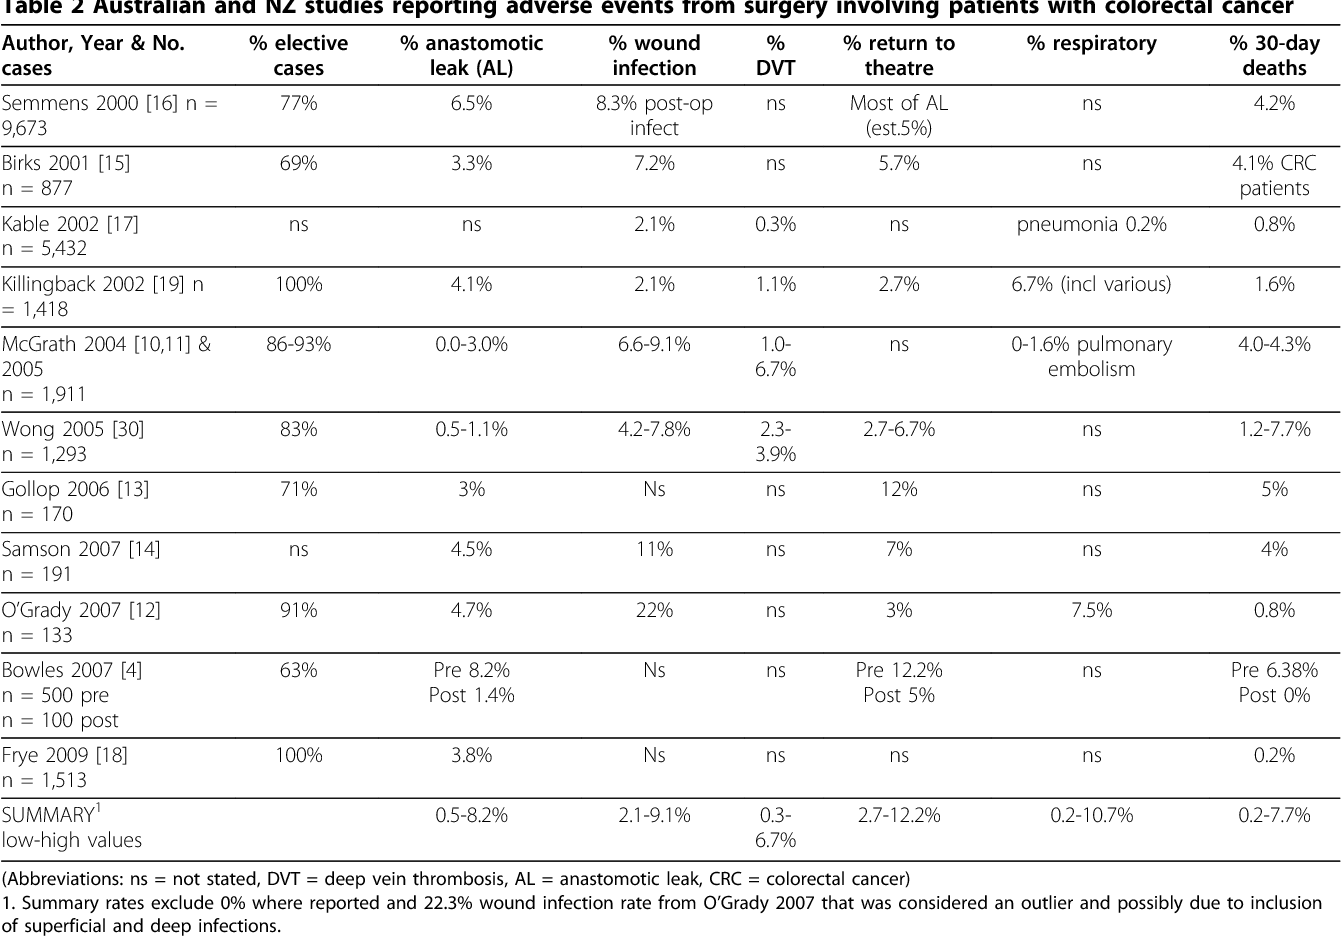 Table 2 Australian and NZ studies reporting adverse events from surgery involving patients with colorectal cancer